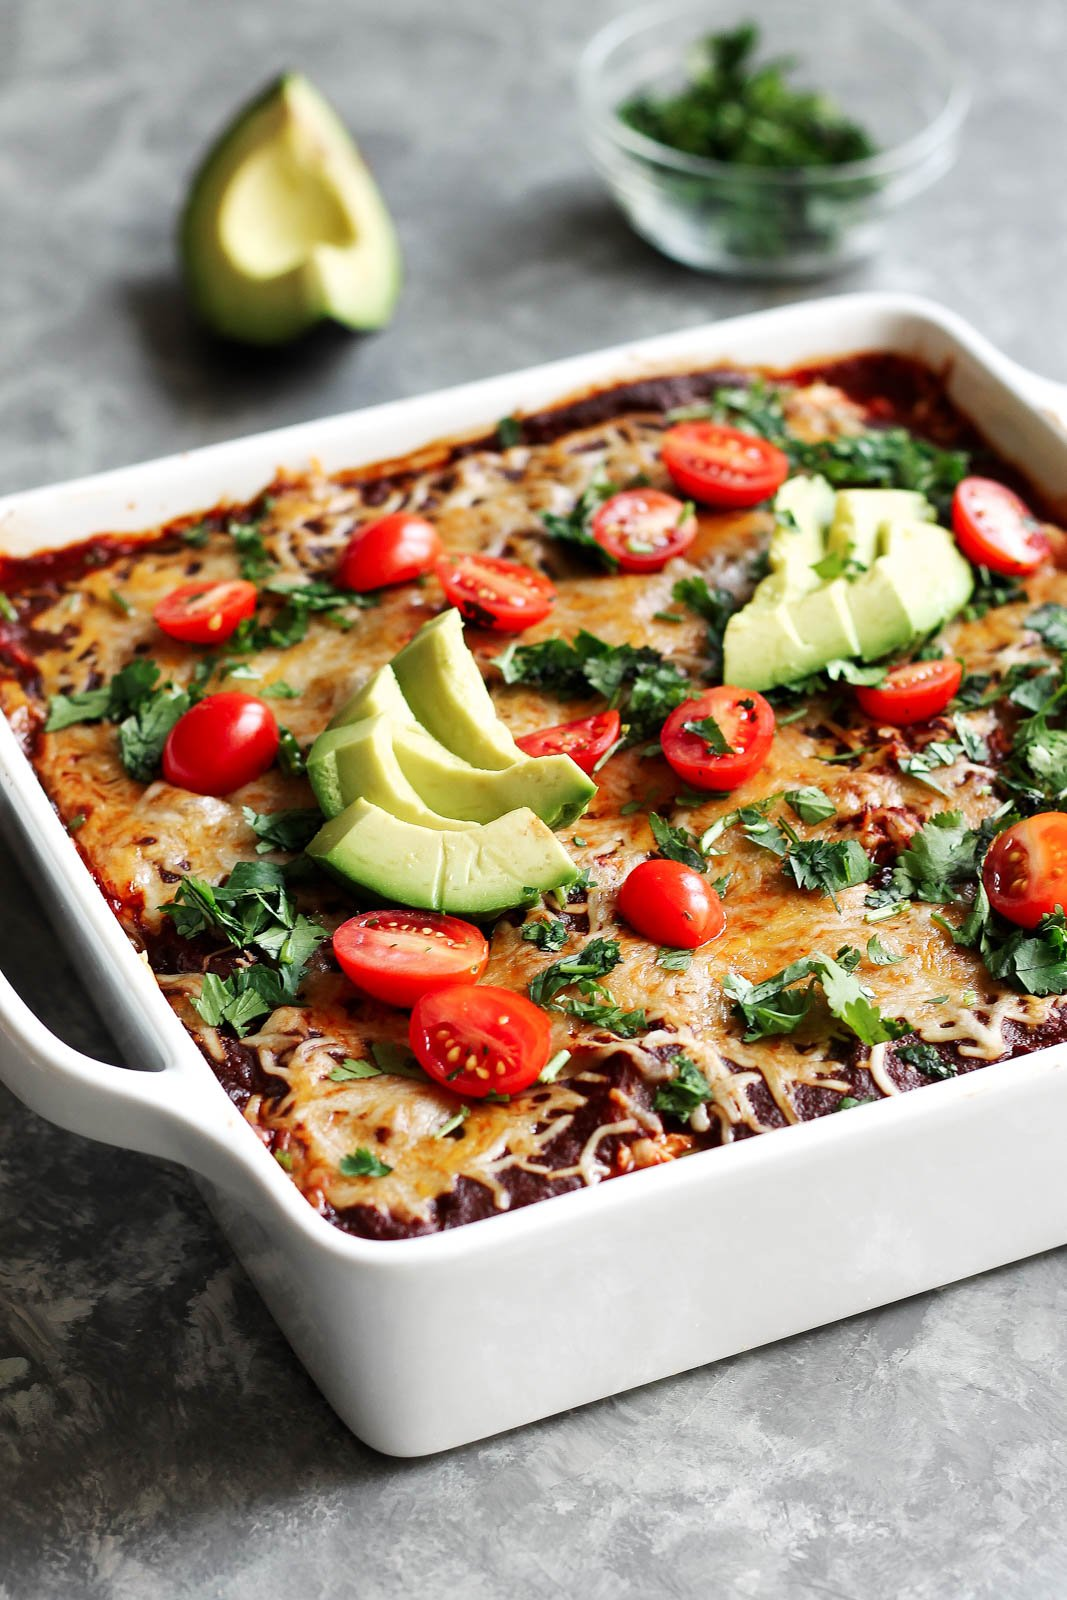 Low carb chicken zucchini enchilada bake with layers upon layers of creamy, flavorful goodness: Refried beans, cheese, chicken, zucchini and a homemade enchilada sauce!